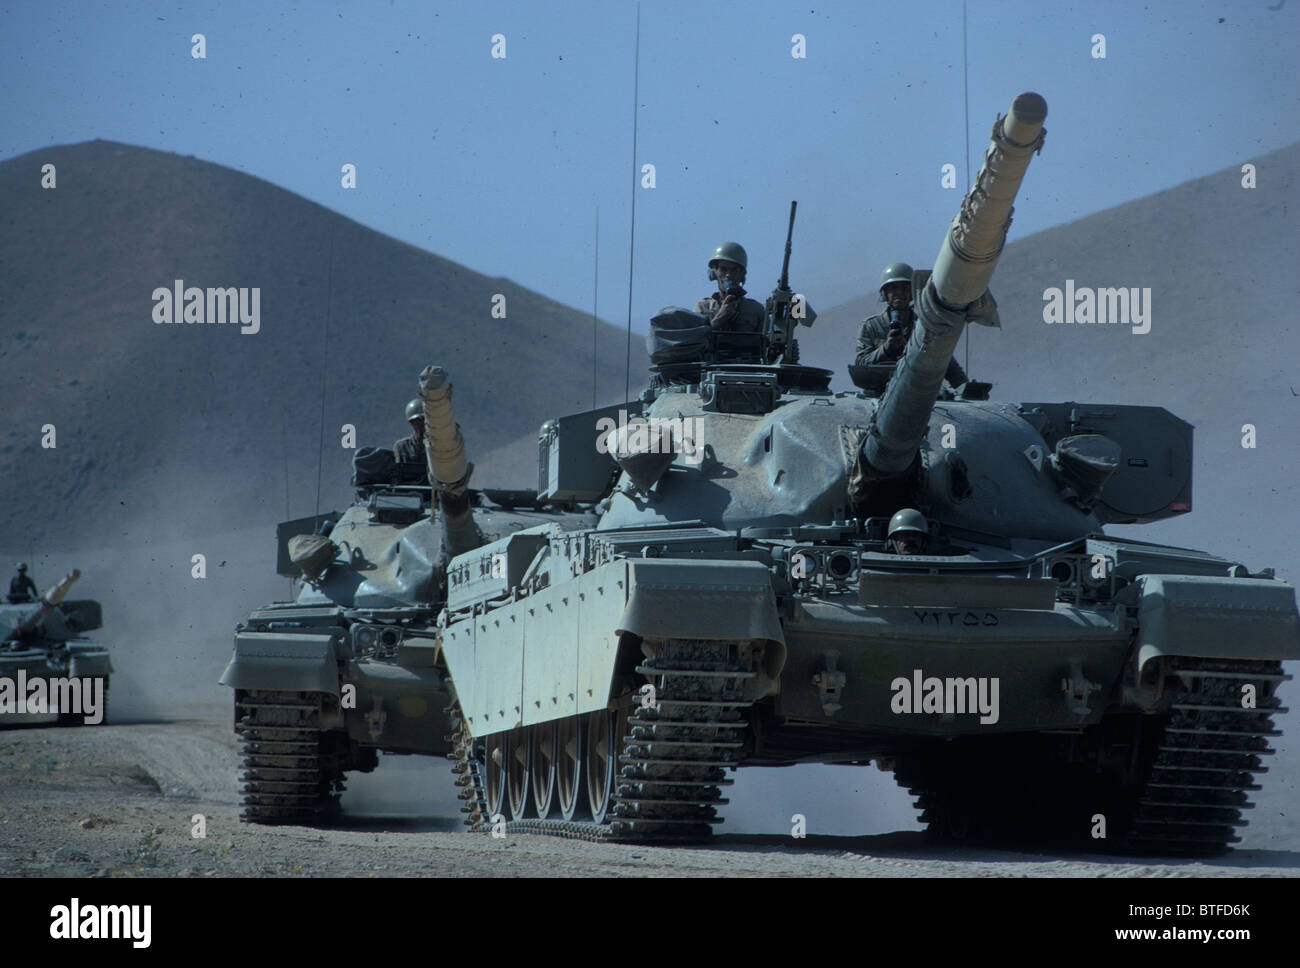 http://c7.alamy.com/comp/BTFD6K/iranian-army-tanks-on-manoeuvres-in-the-desert-in-early-1970s-during-BTFD6K.jpg